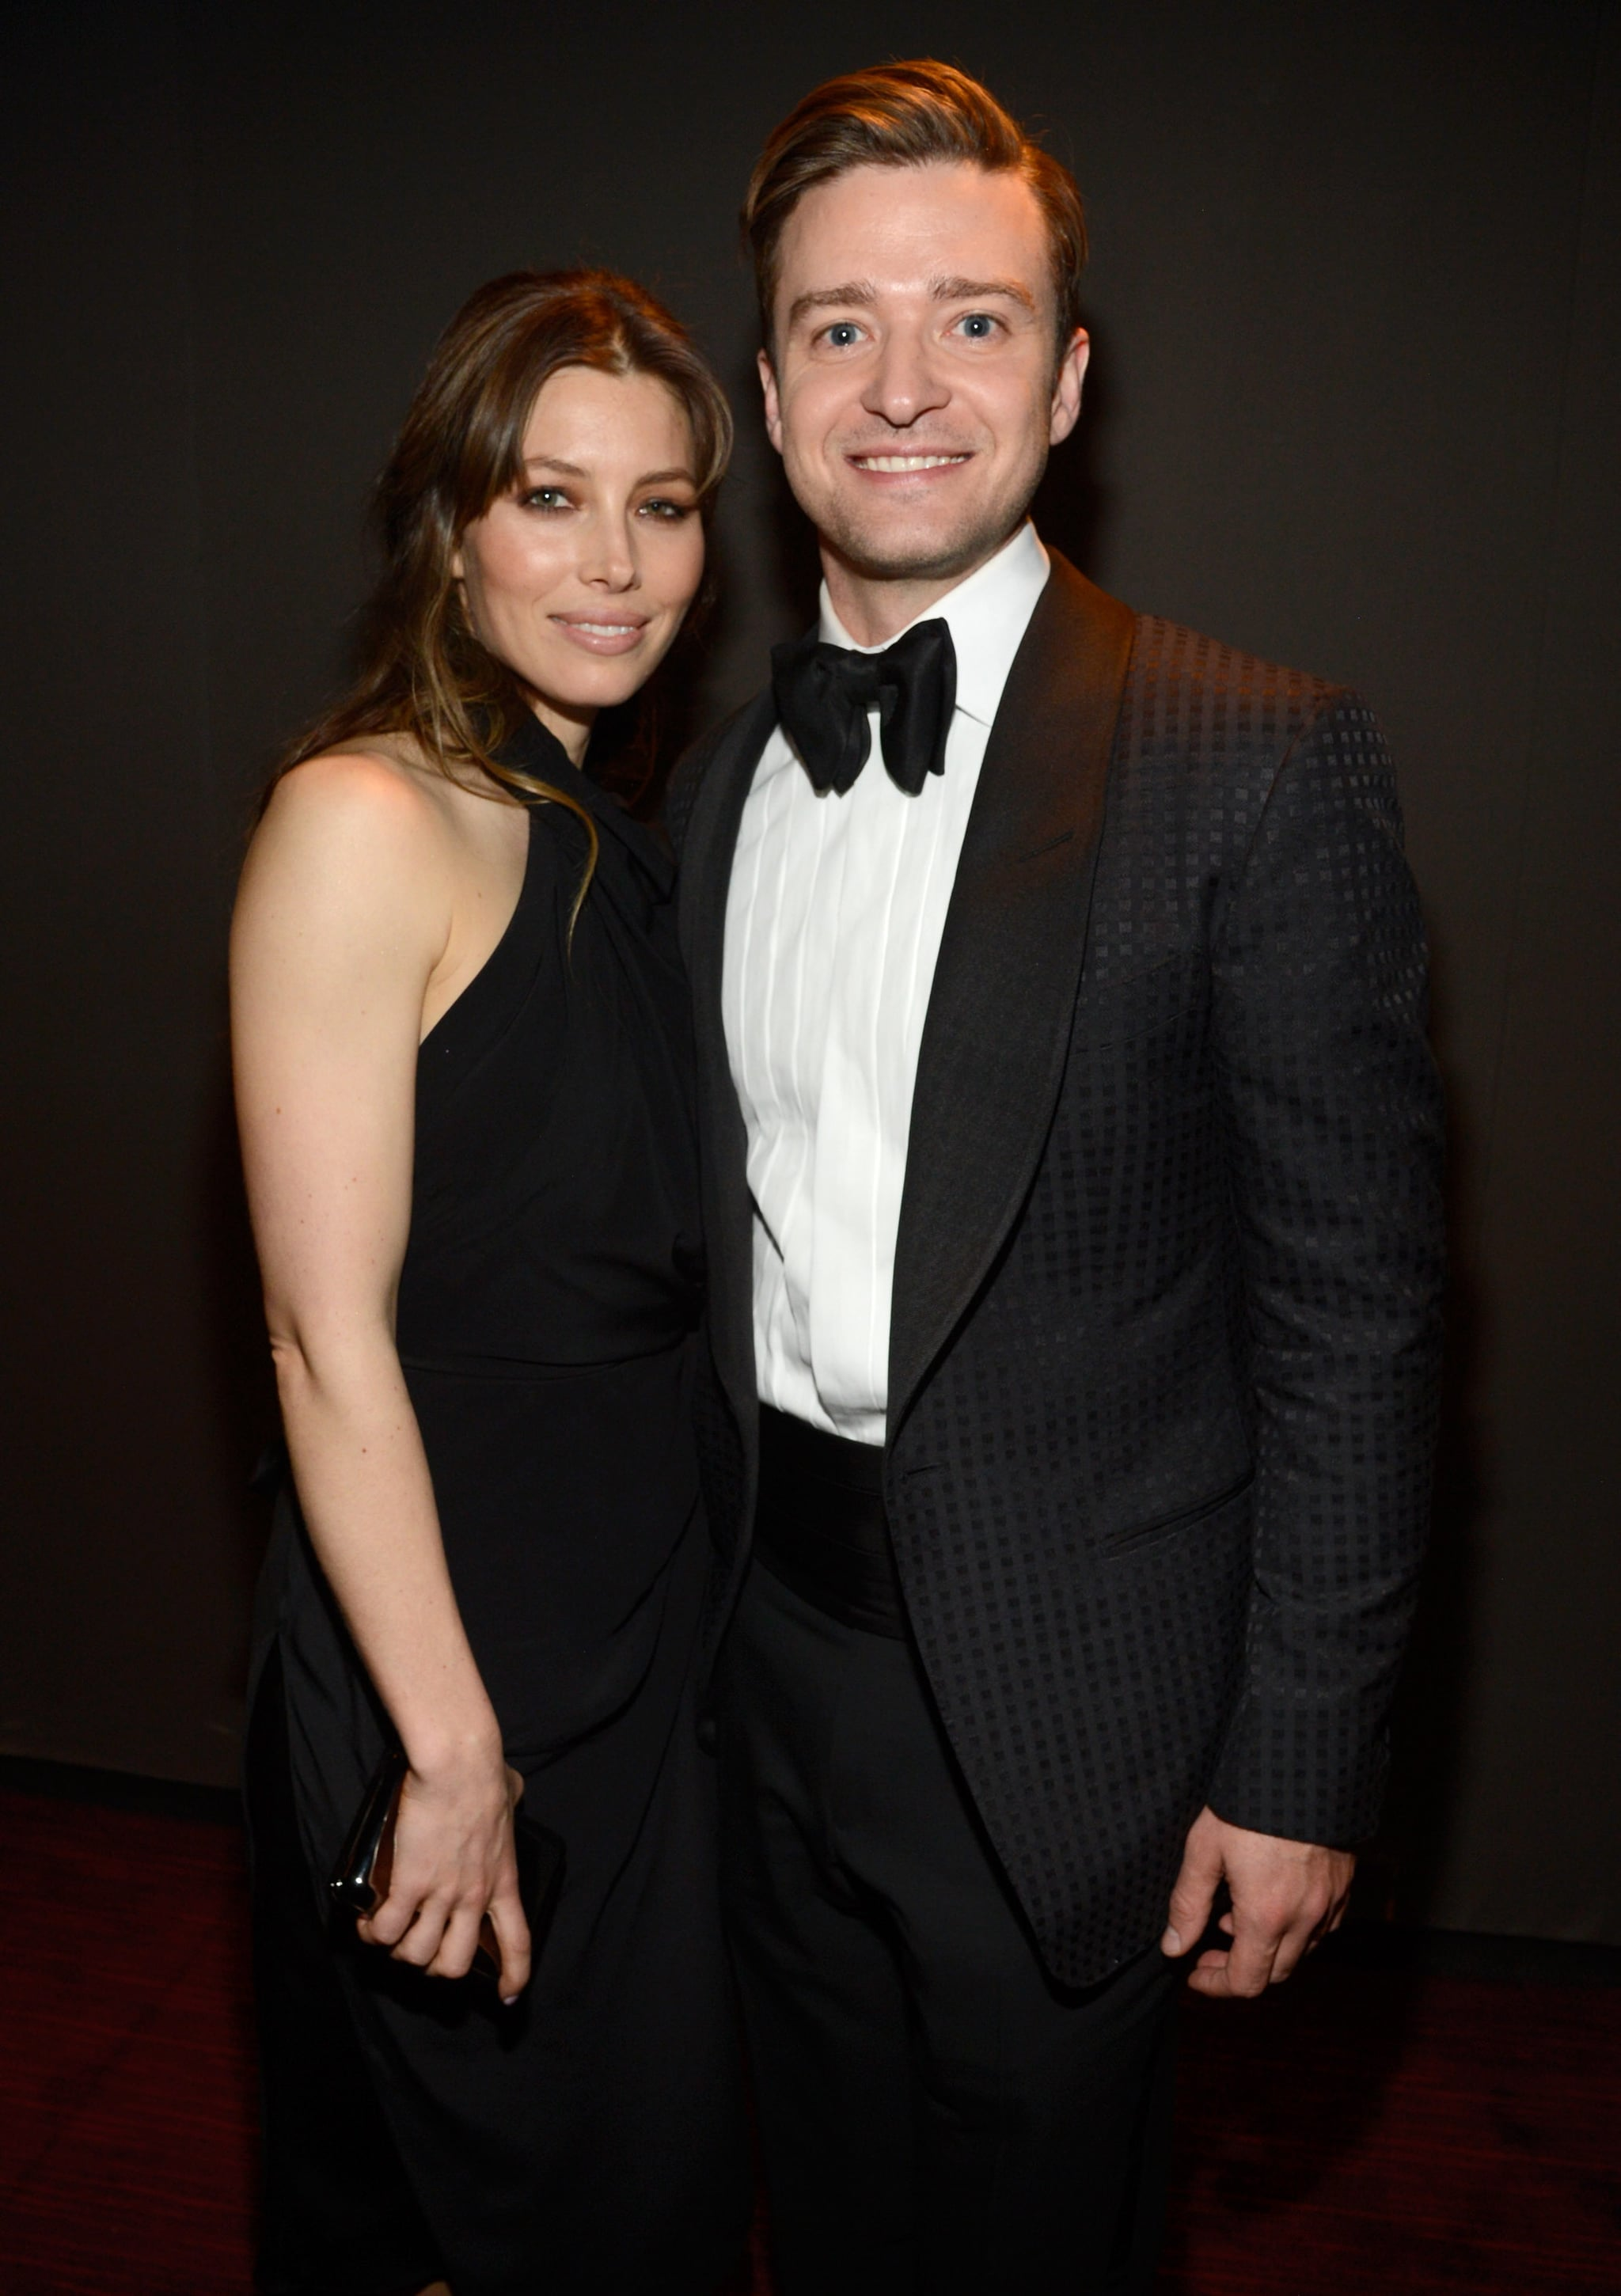 Justin and his wife, Jessica Biel, were all smiles at the Time 100 Gala in April 2013.